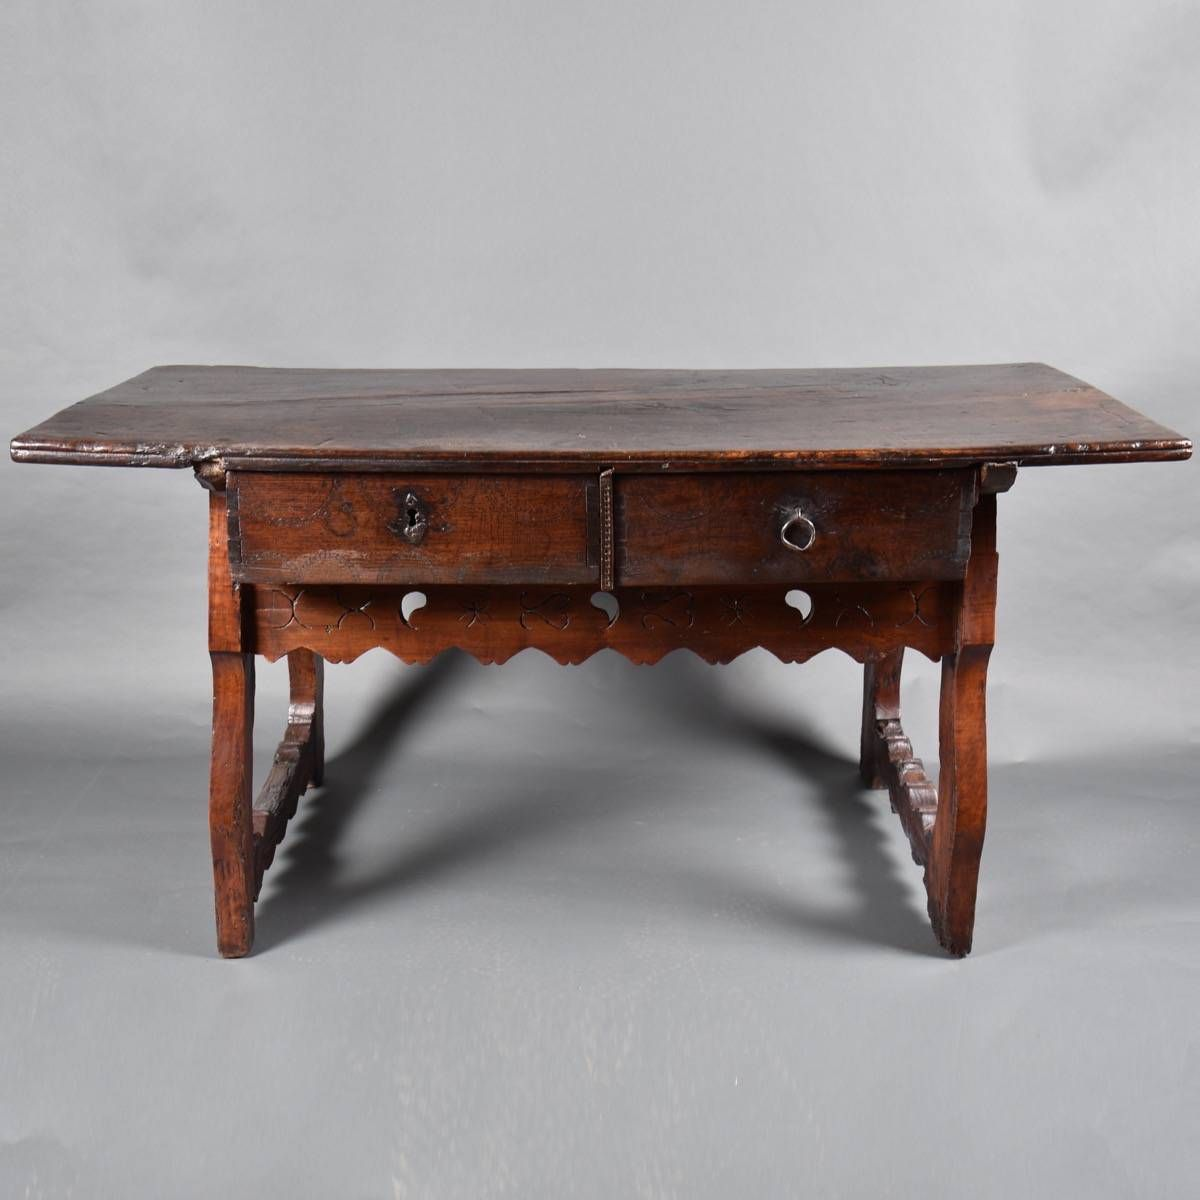 Rustic Spanish Table. 17th Century Charming Rustic Antique Spanish Table  With Two Frontal Drawers.